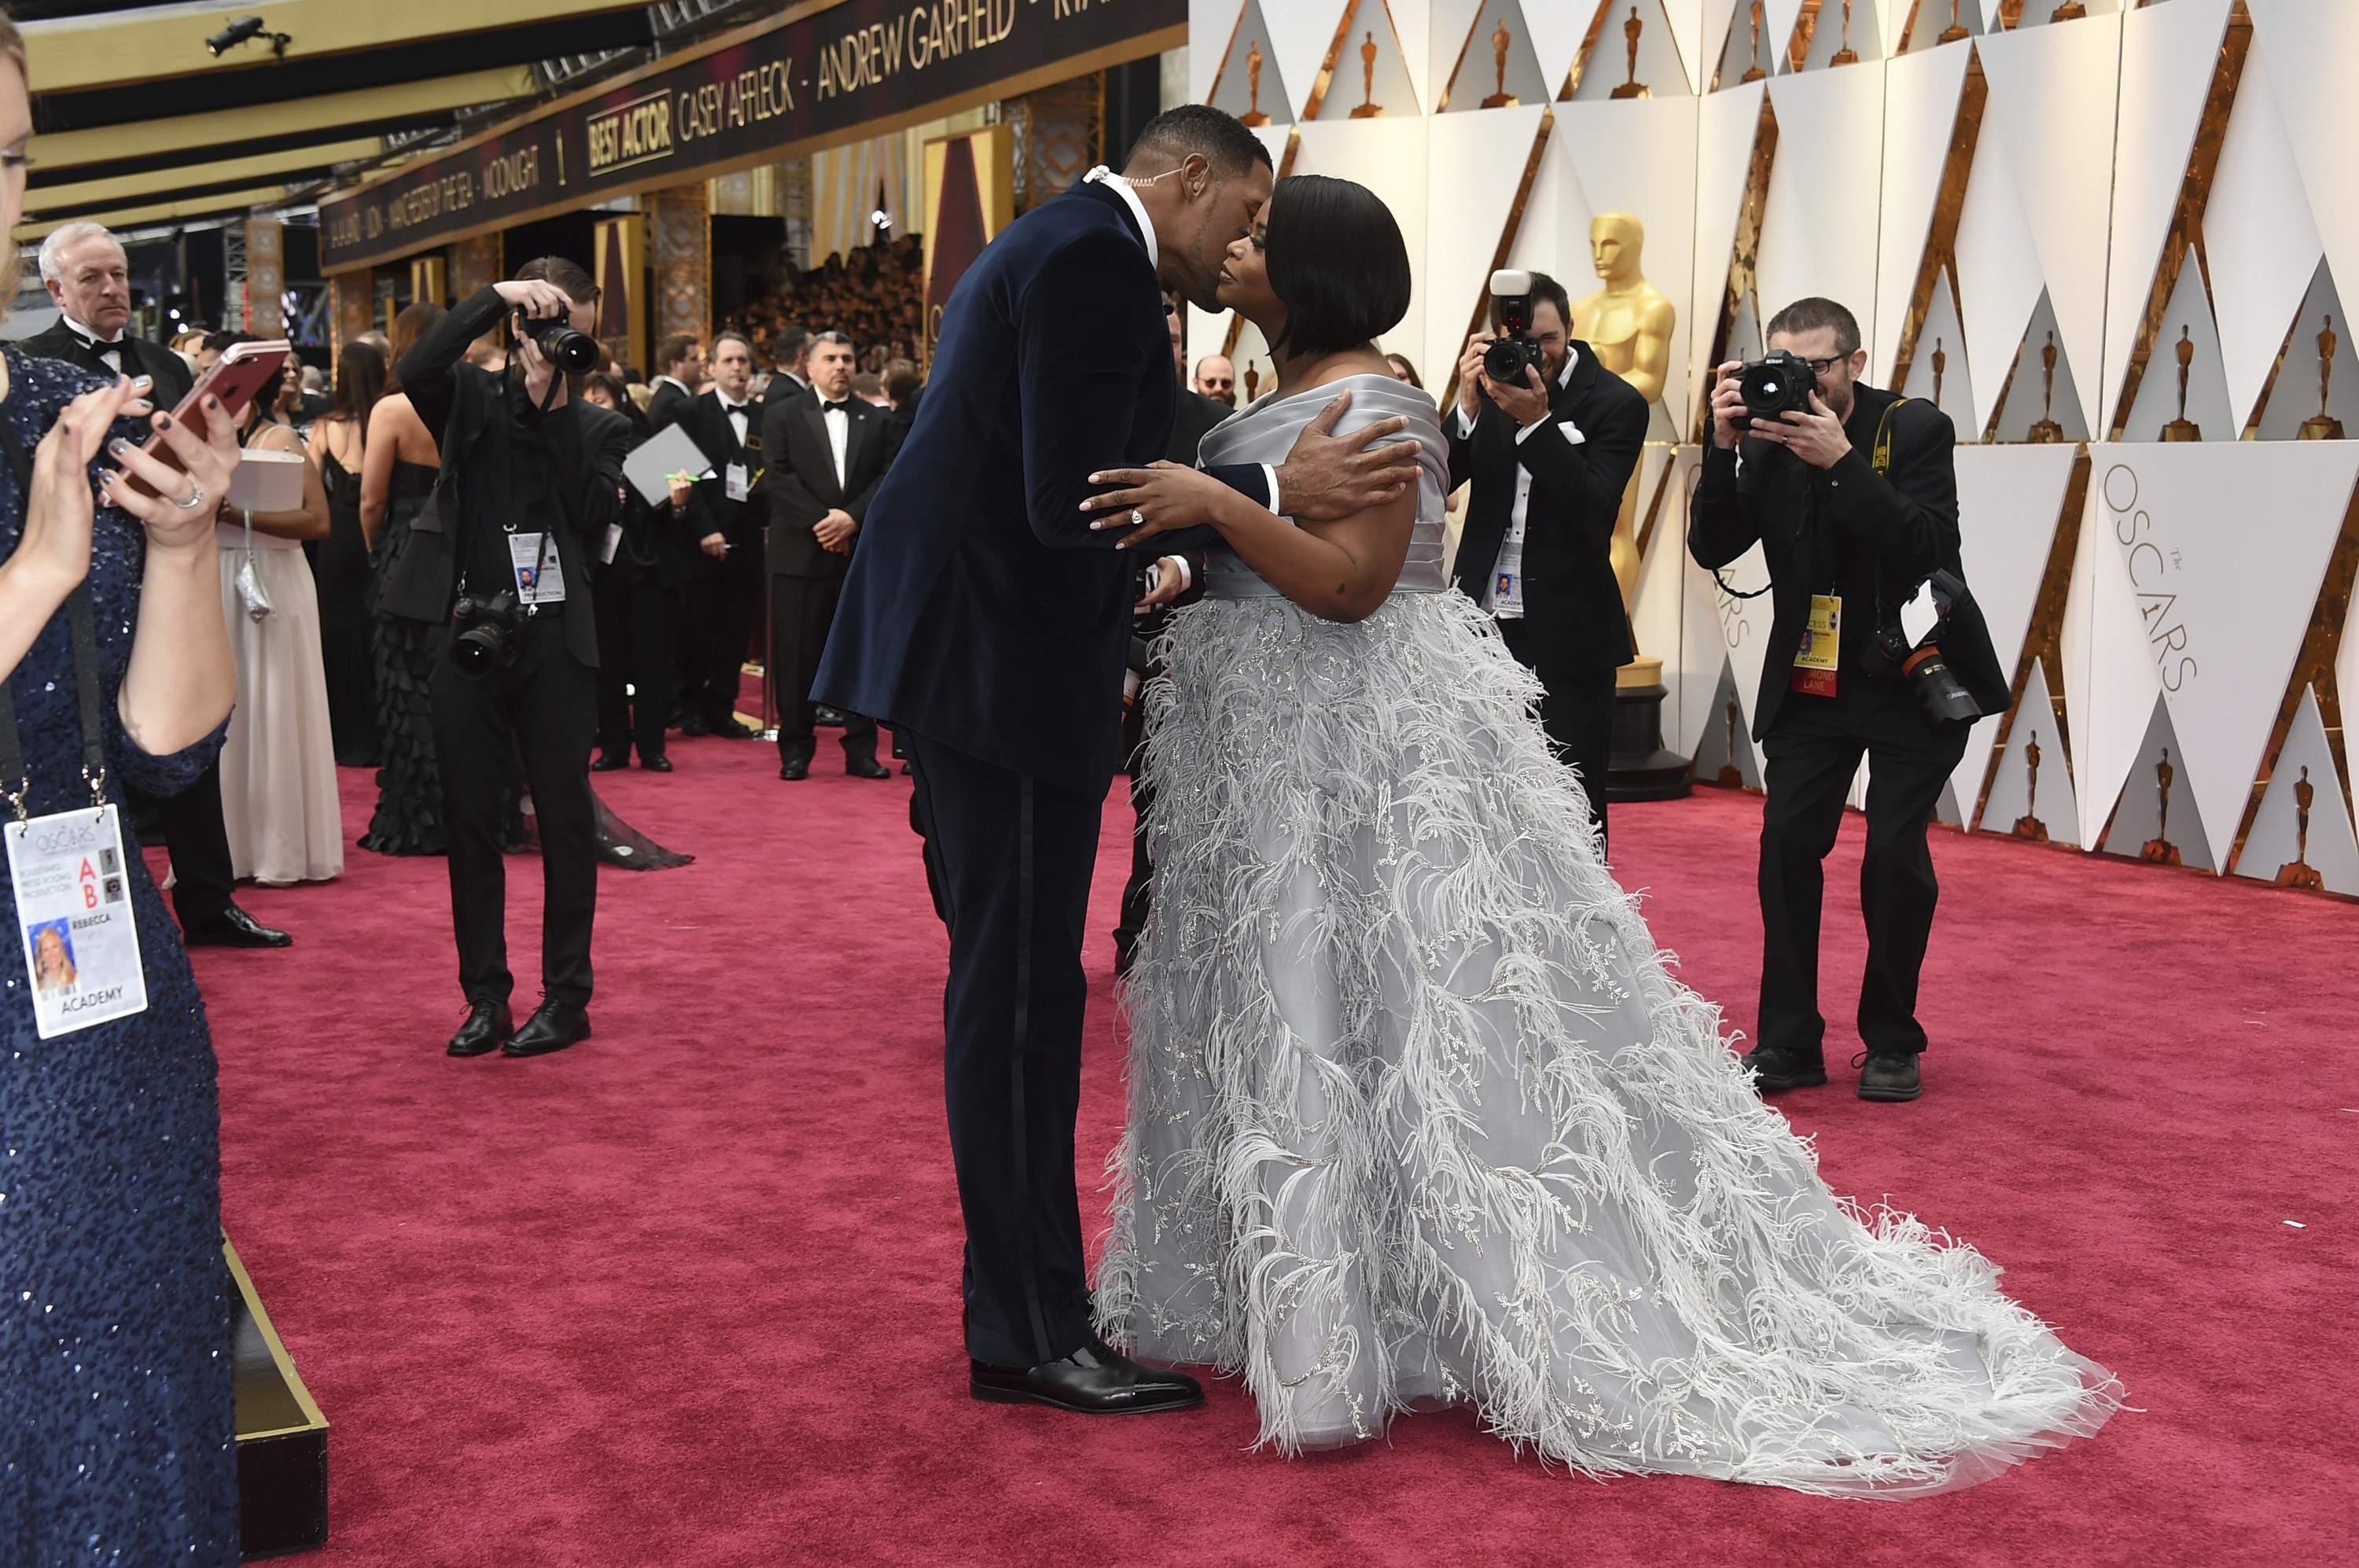 Michael Strahan, left, and Octavia Spencer embrace at the Oscars on Sunday, Feb. 26, 2017, at the Dolby Theatre in Los Angeles. THE ASSOCIATED PRESS